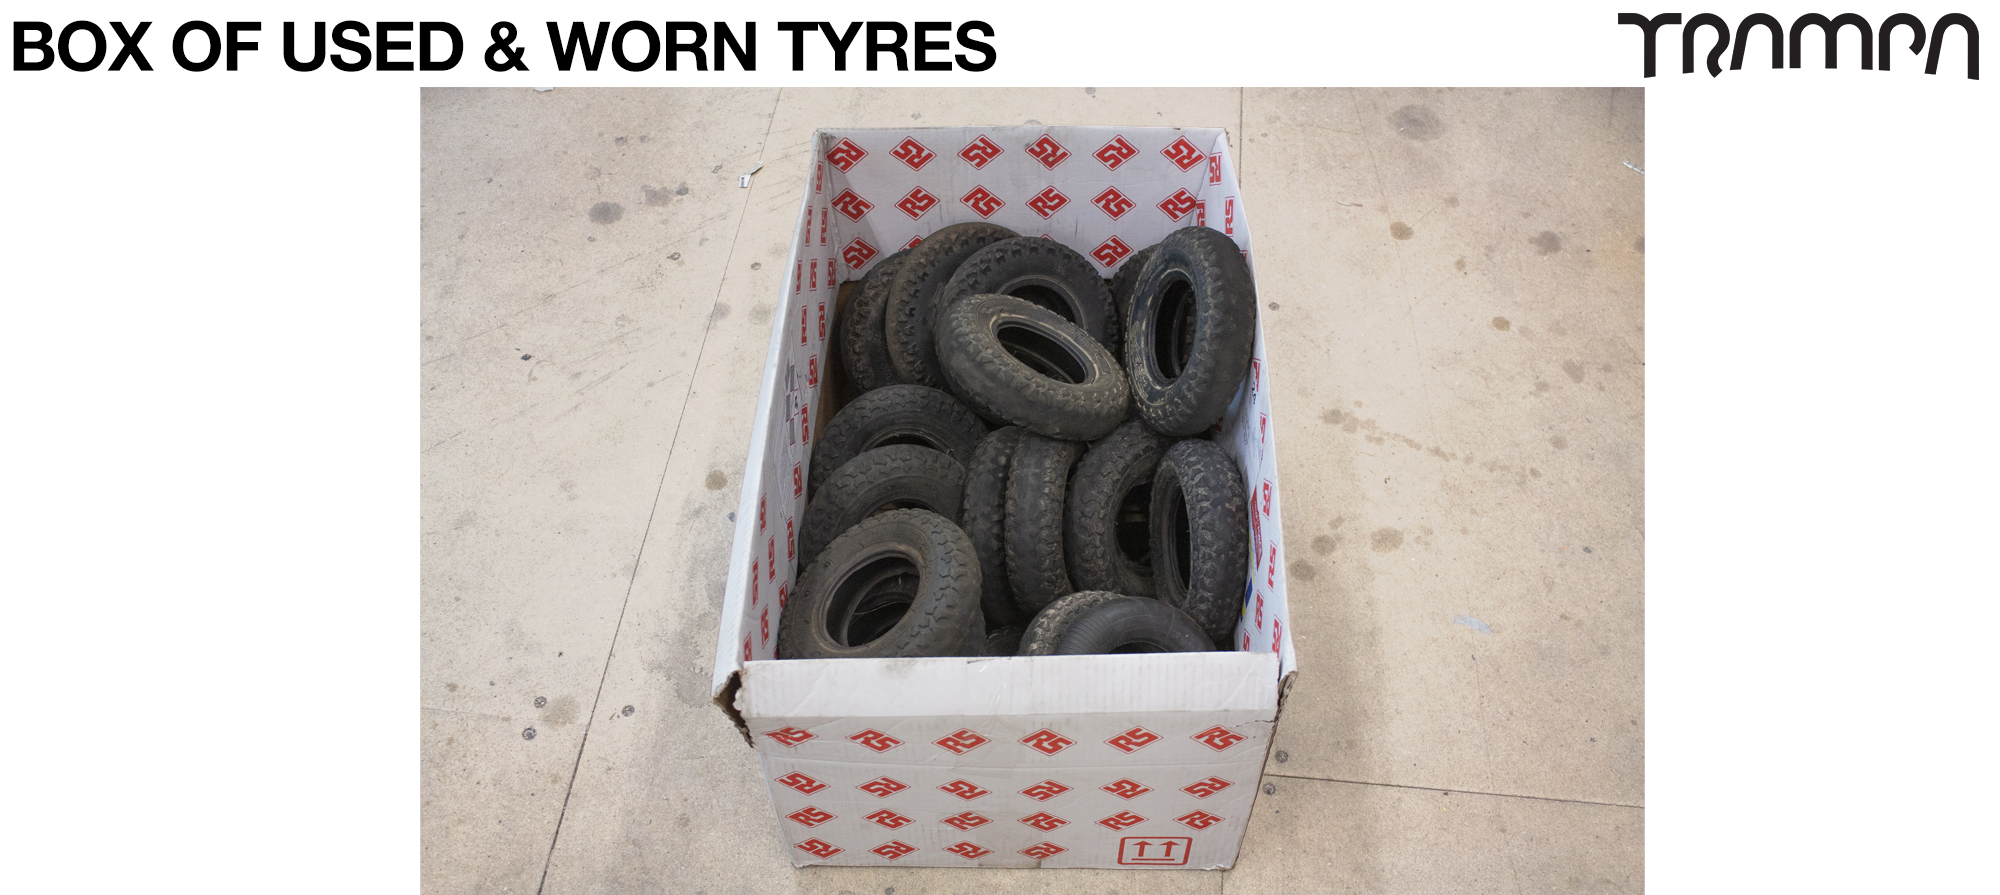 Box of Used / Worn Tyres